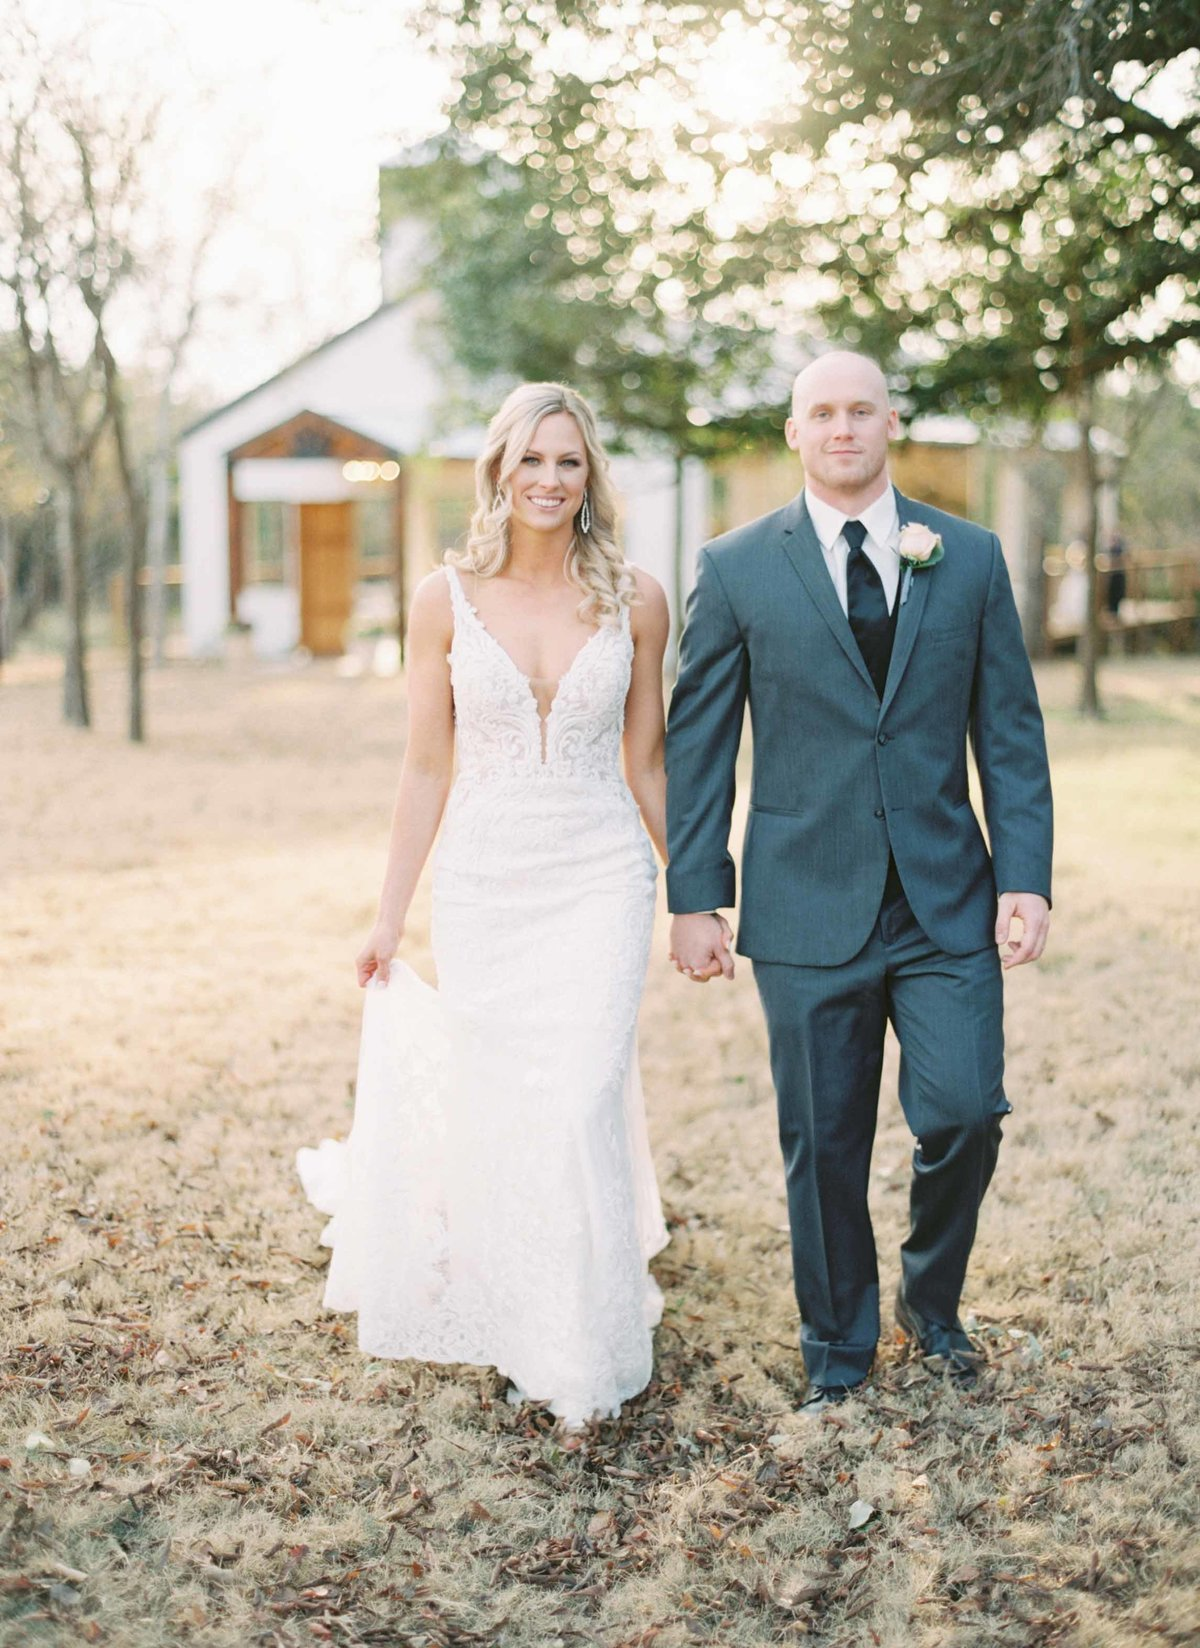 Angel_owens_photography_wedding77